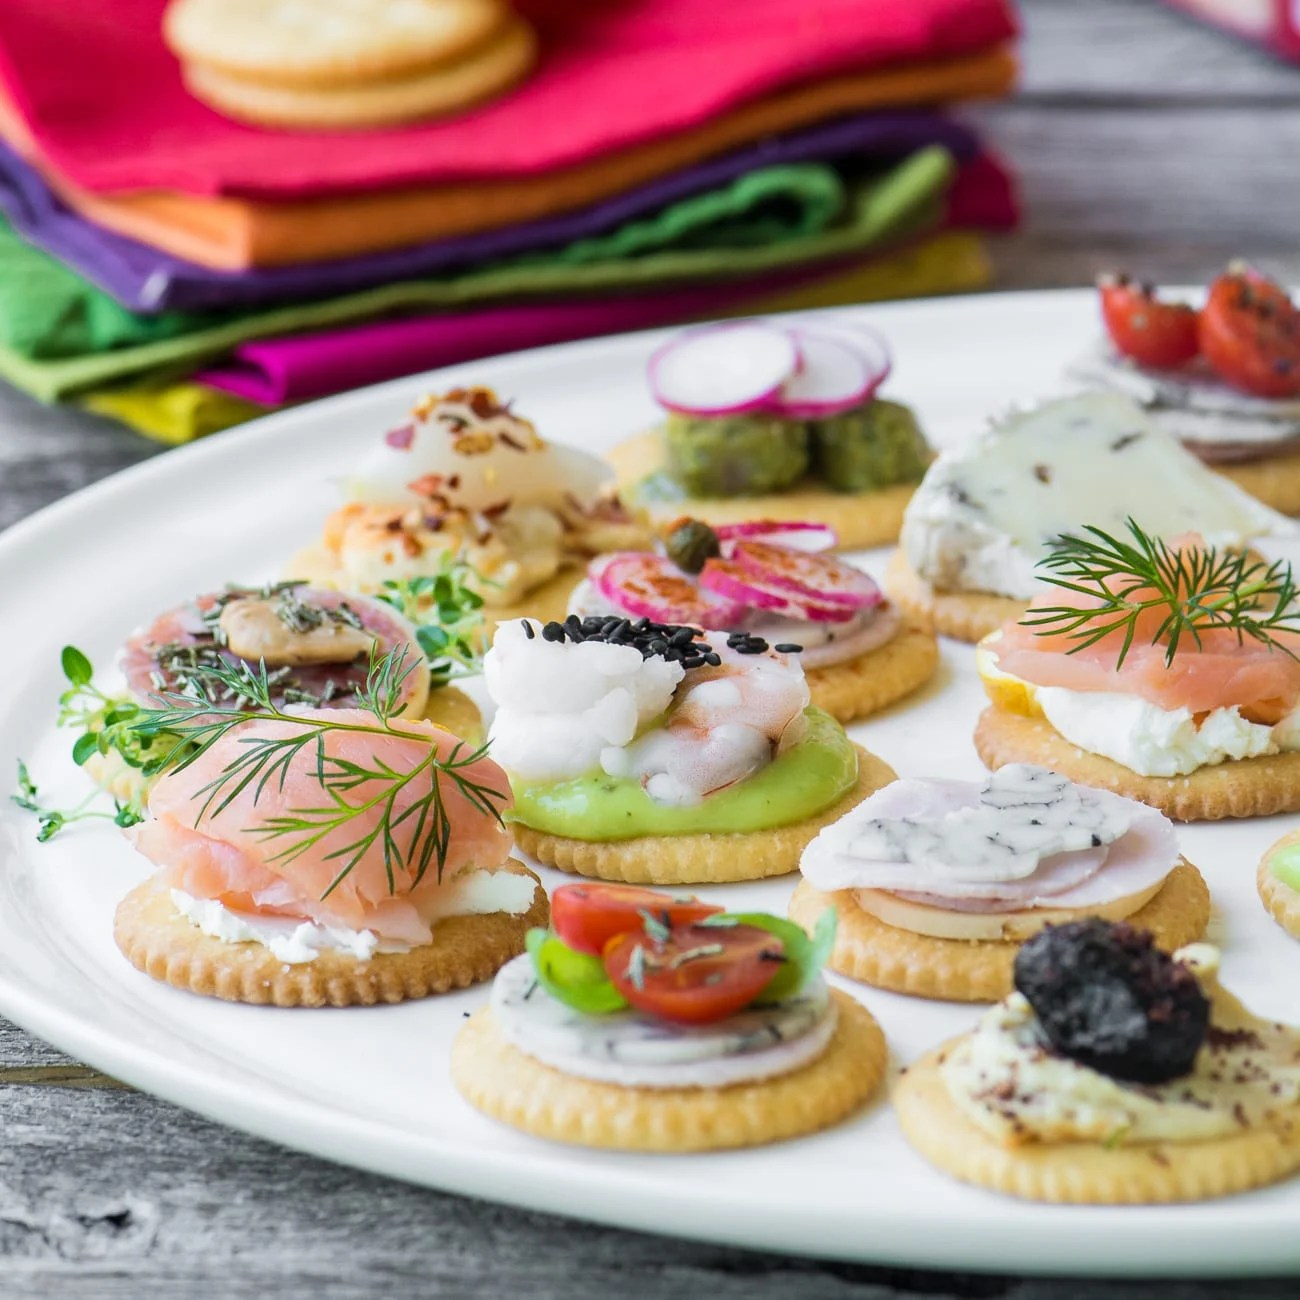 Canape Design Hawaii Easy Ritz Cracker Canapés Video The View From Great Island